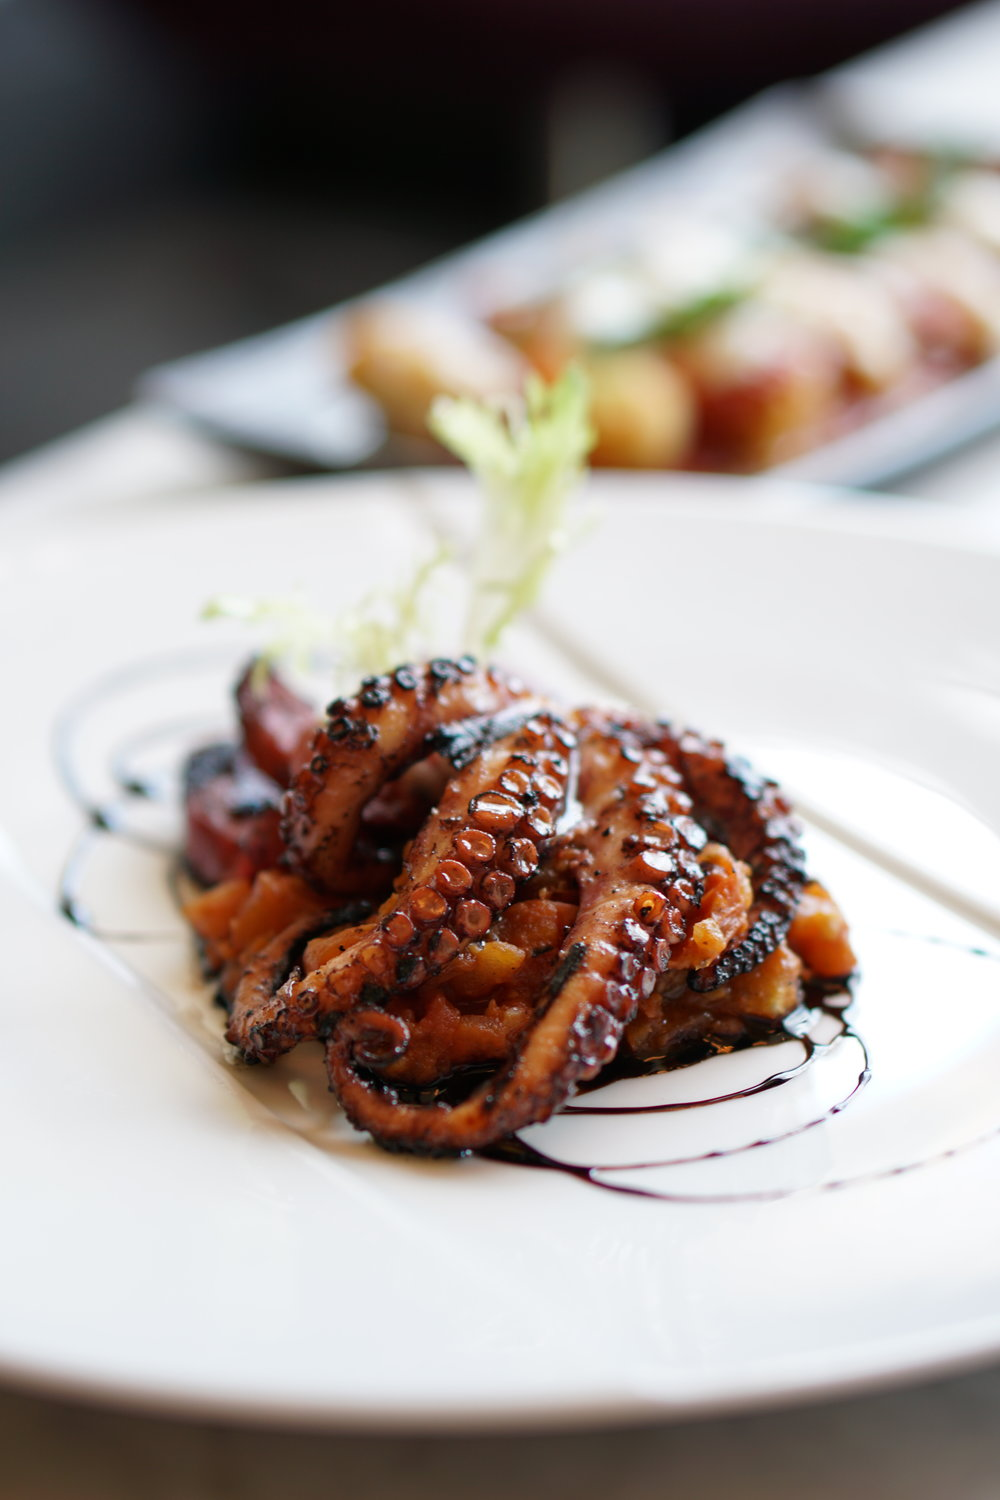 Octopus Appetizer: grilled octopus, chorizo, roasted garlic &tomato ragu